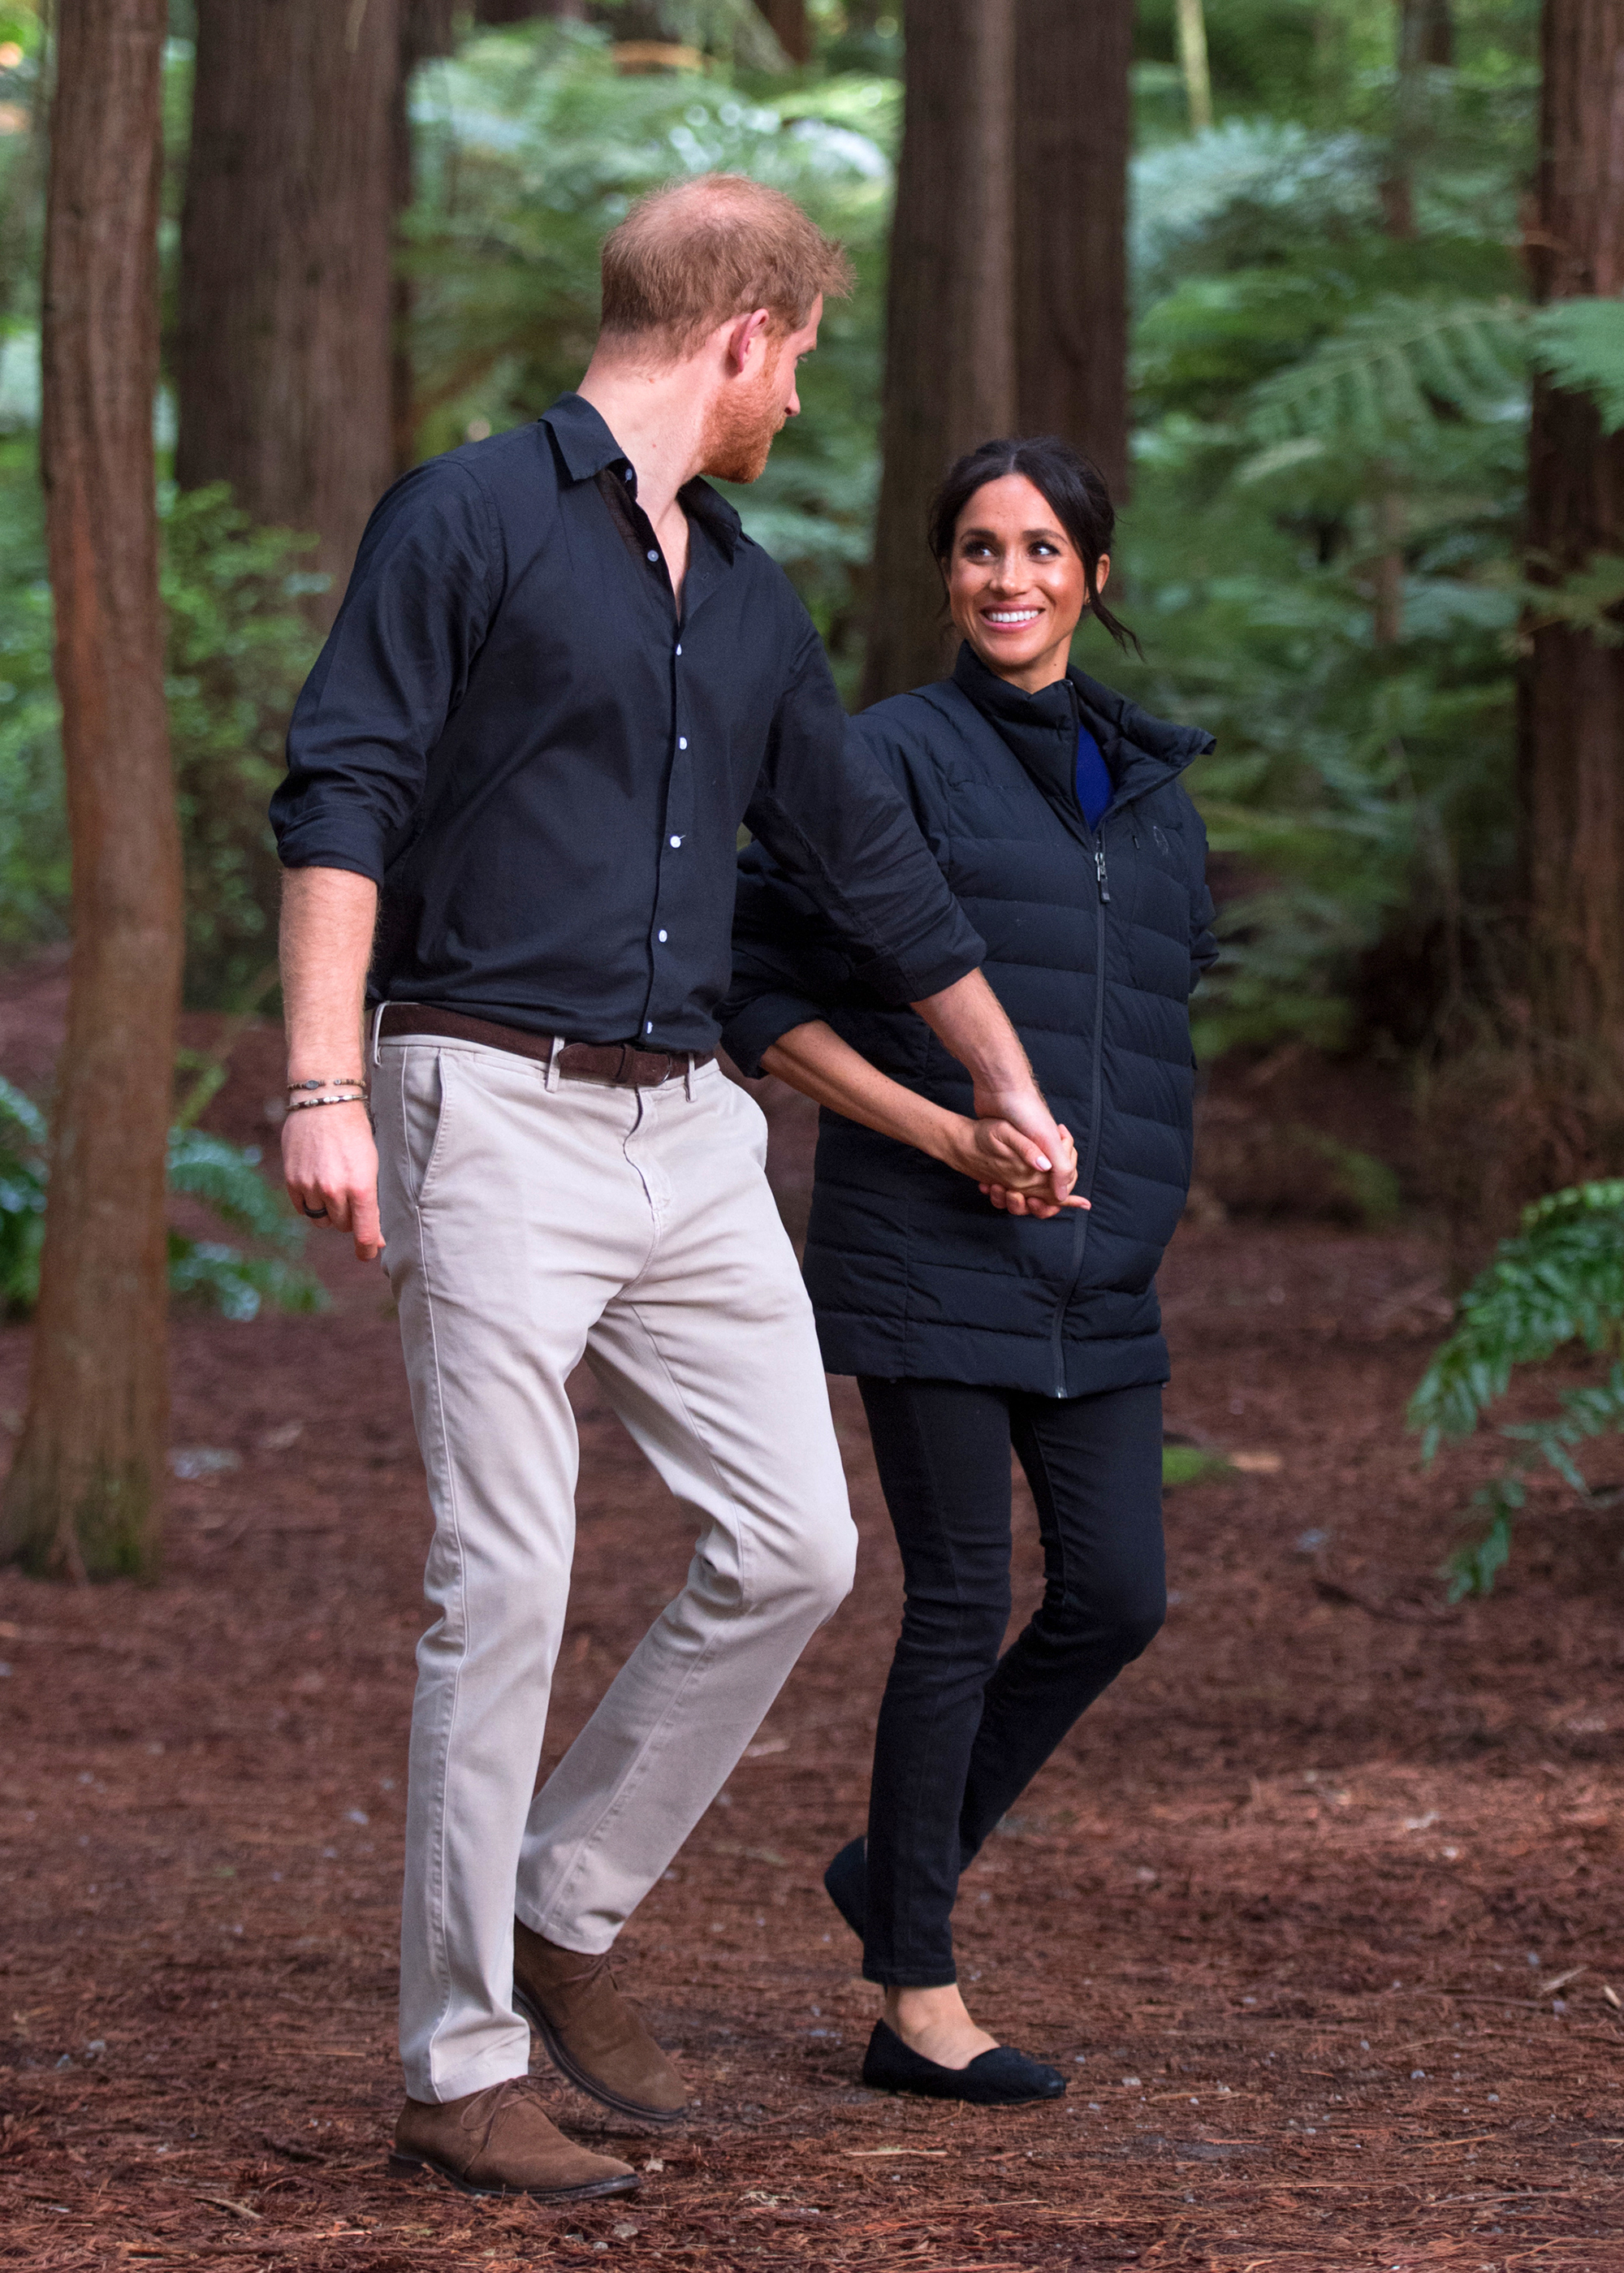 Meghan Markle¹s $120 Birdies Starling Slippers Are Back in Stock ‹ for Now - ROTORUA, NEW ZEALAND – OCTOBER 31: (UK OUT FOR 28 DAYS) Prince Harry, Duke of Sussex and Meghan, Duchess of Sussex visit Redwoods Tree Walk on October 31, 2018 in Rotorua, New Zealand. The Duke and Duchess of Sussex are on their official 16-day Autumn tour visiting cities in Australia, Fiji, Tonga and New Zealand.